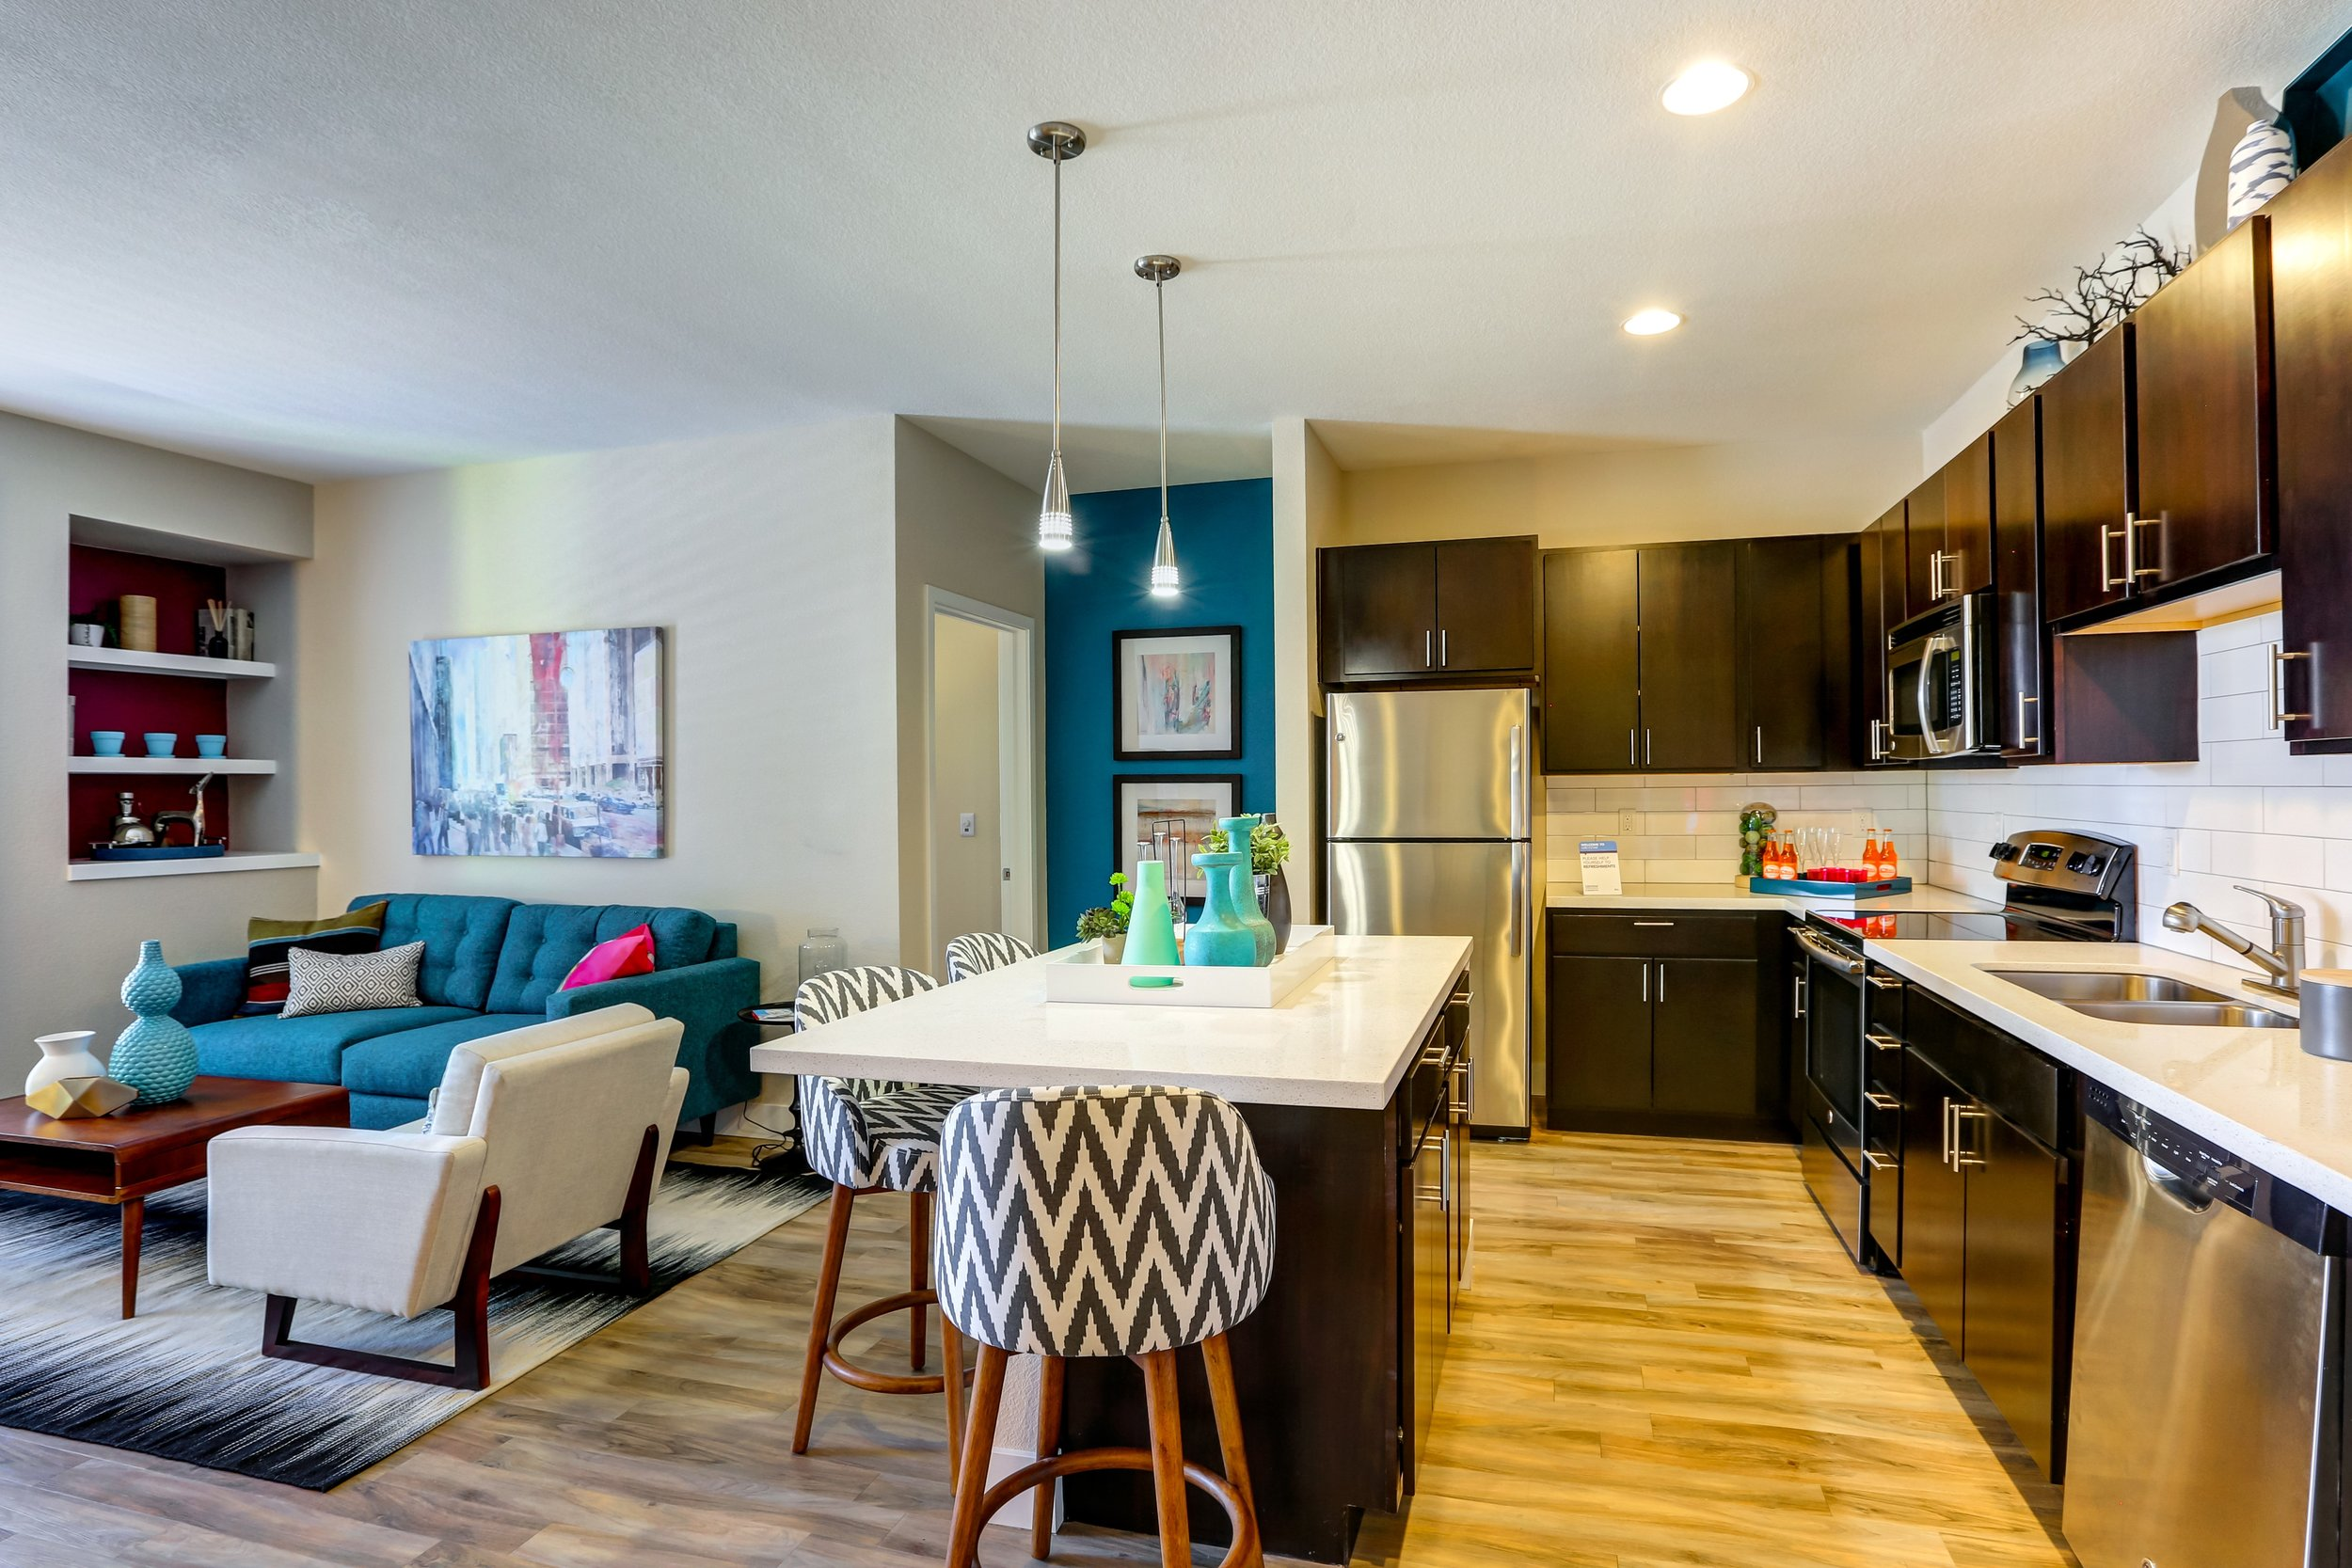 01-Welcome to Westend Apartments.jpg